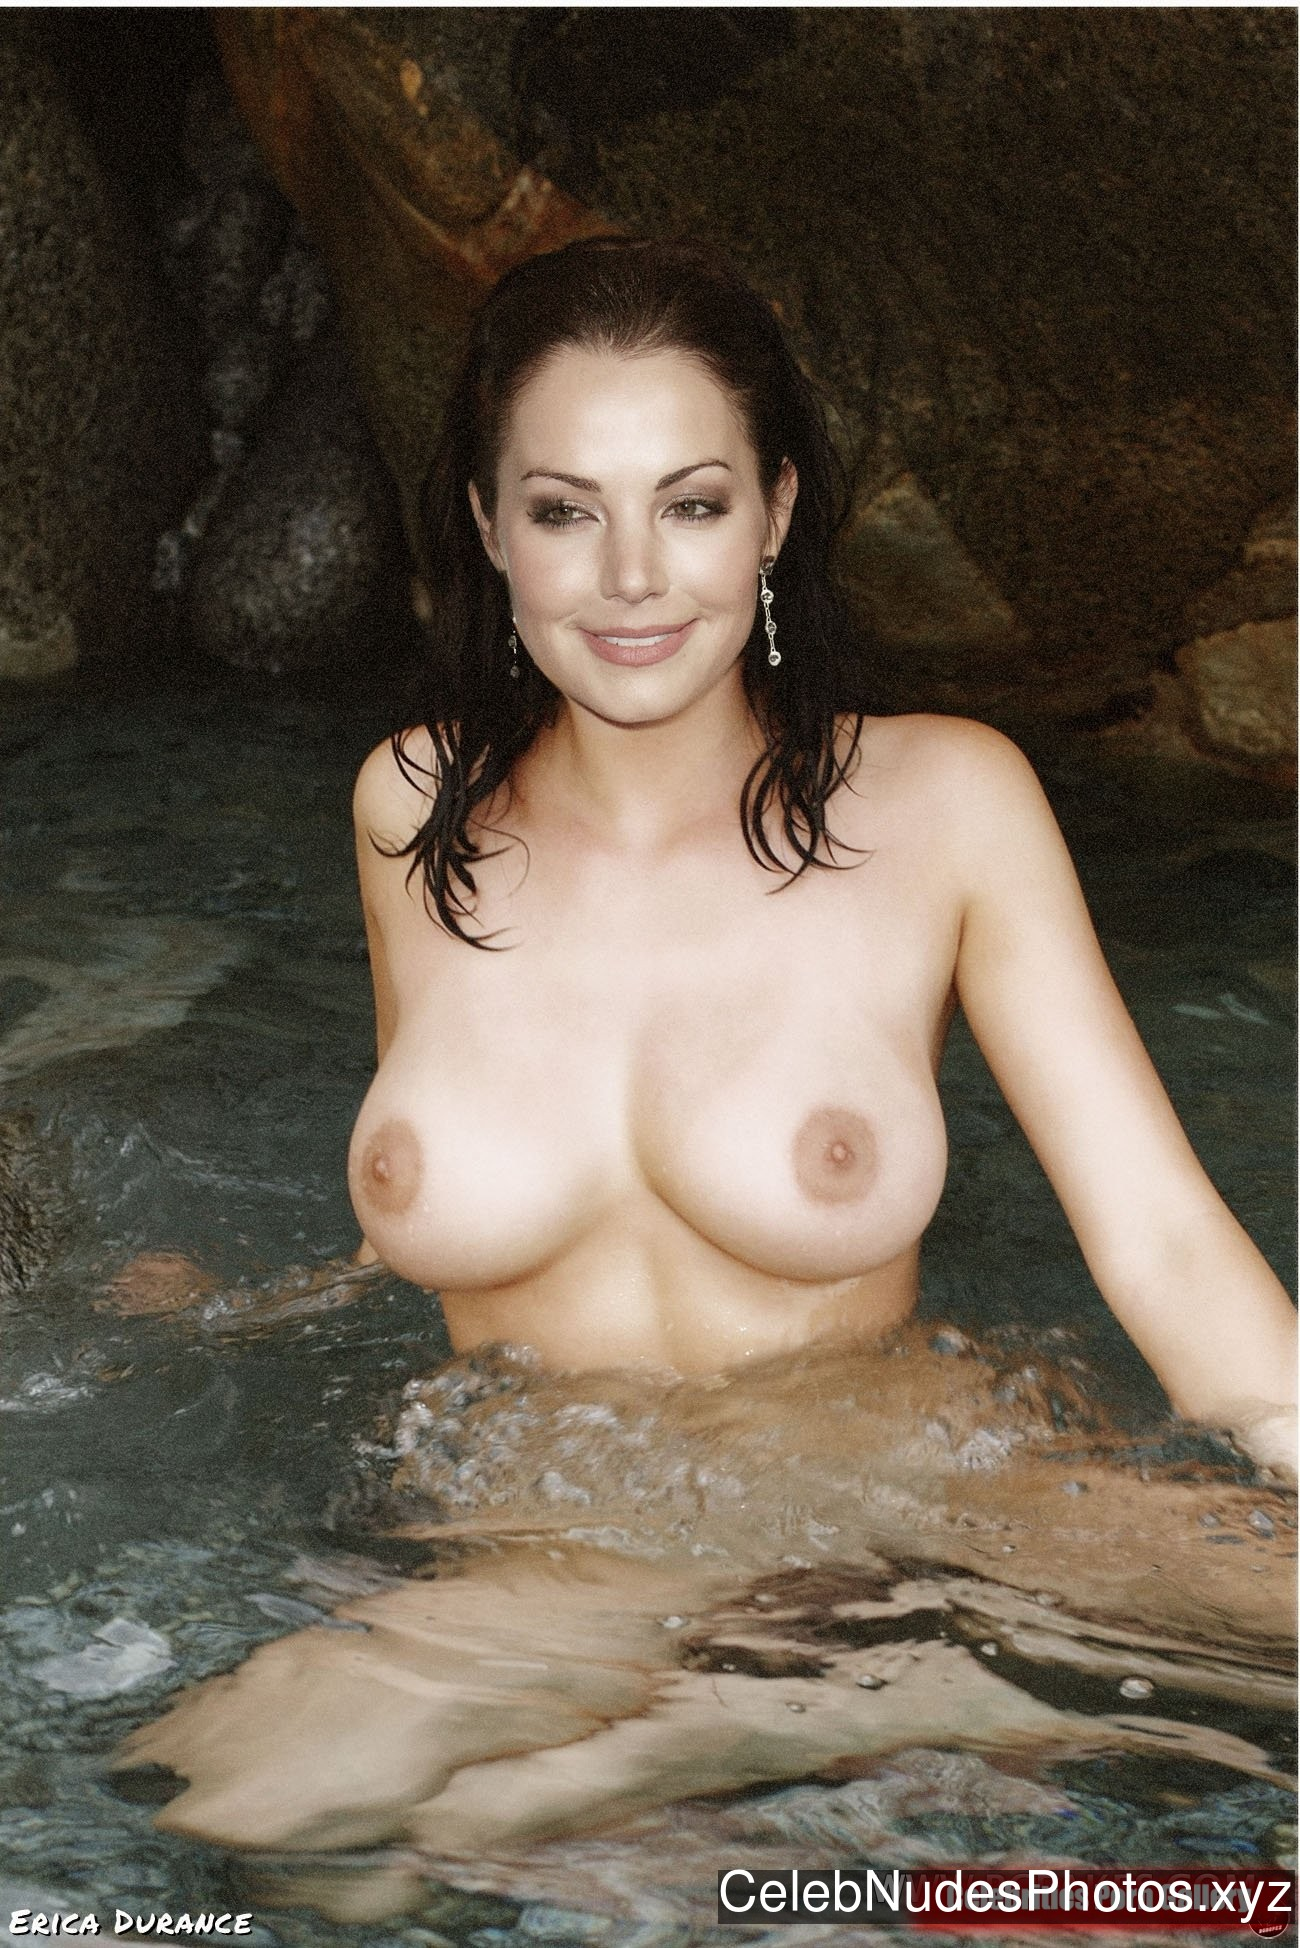 Think, erica durance topless